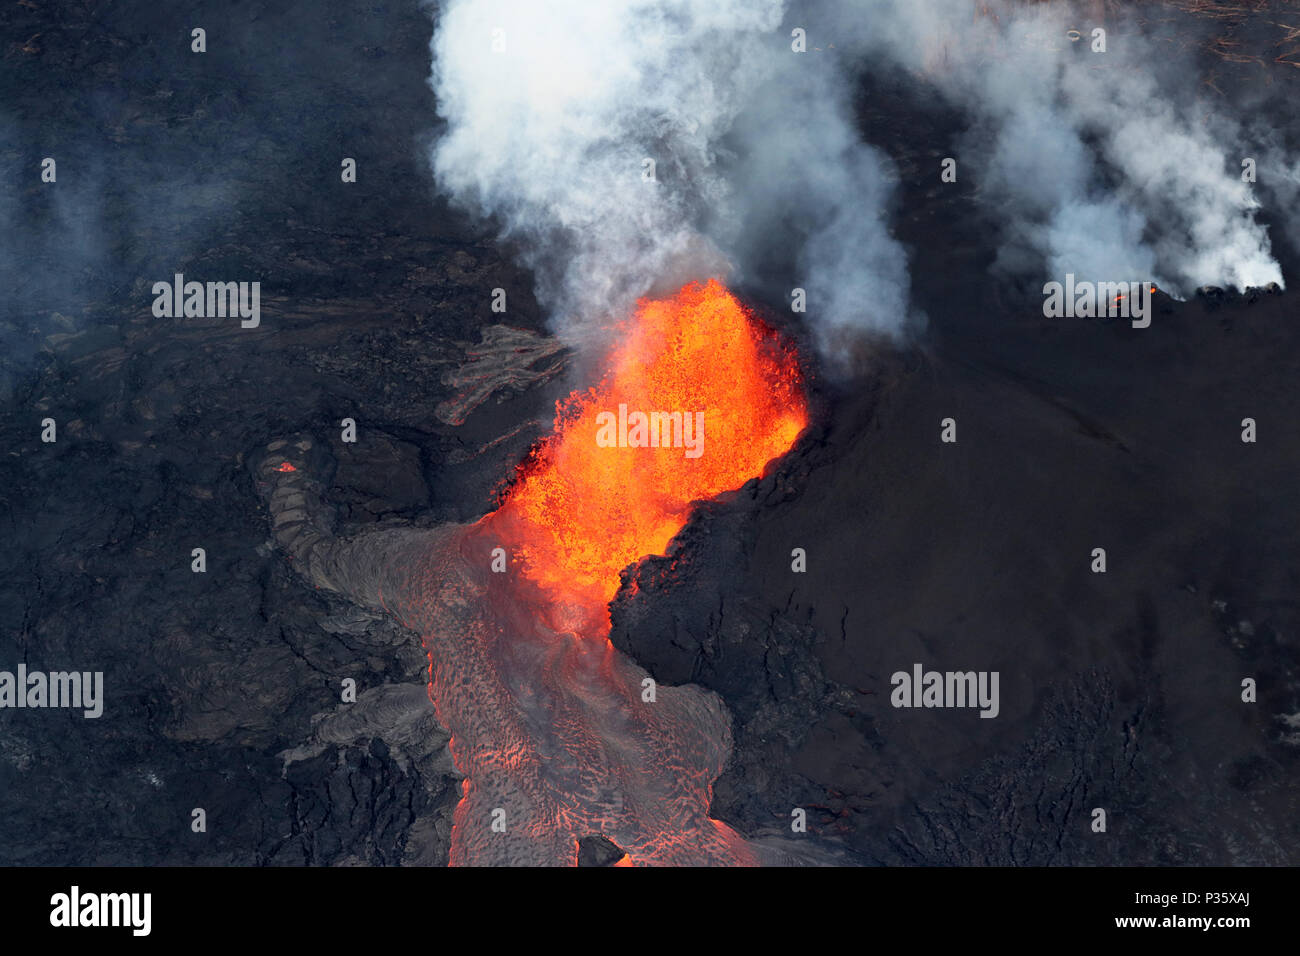 Aerial view of the volcanic eruption of volcano Kilauea, Fissure 8, May 2018 - Stock Image